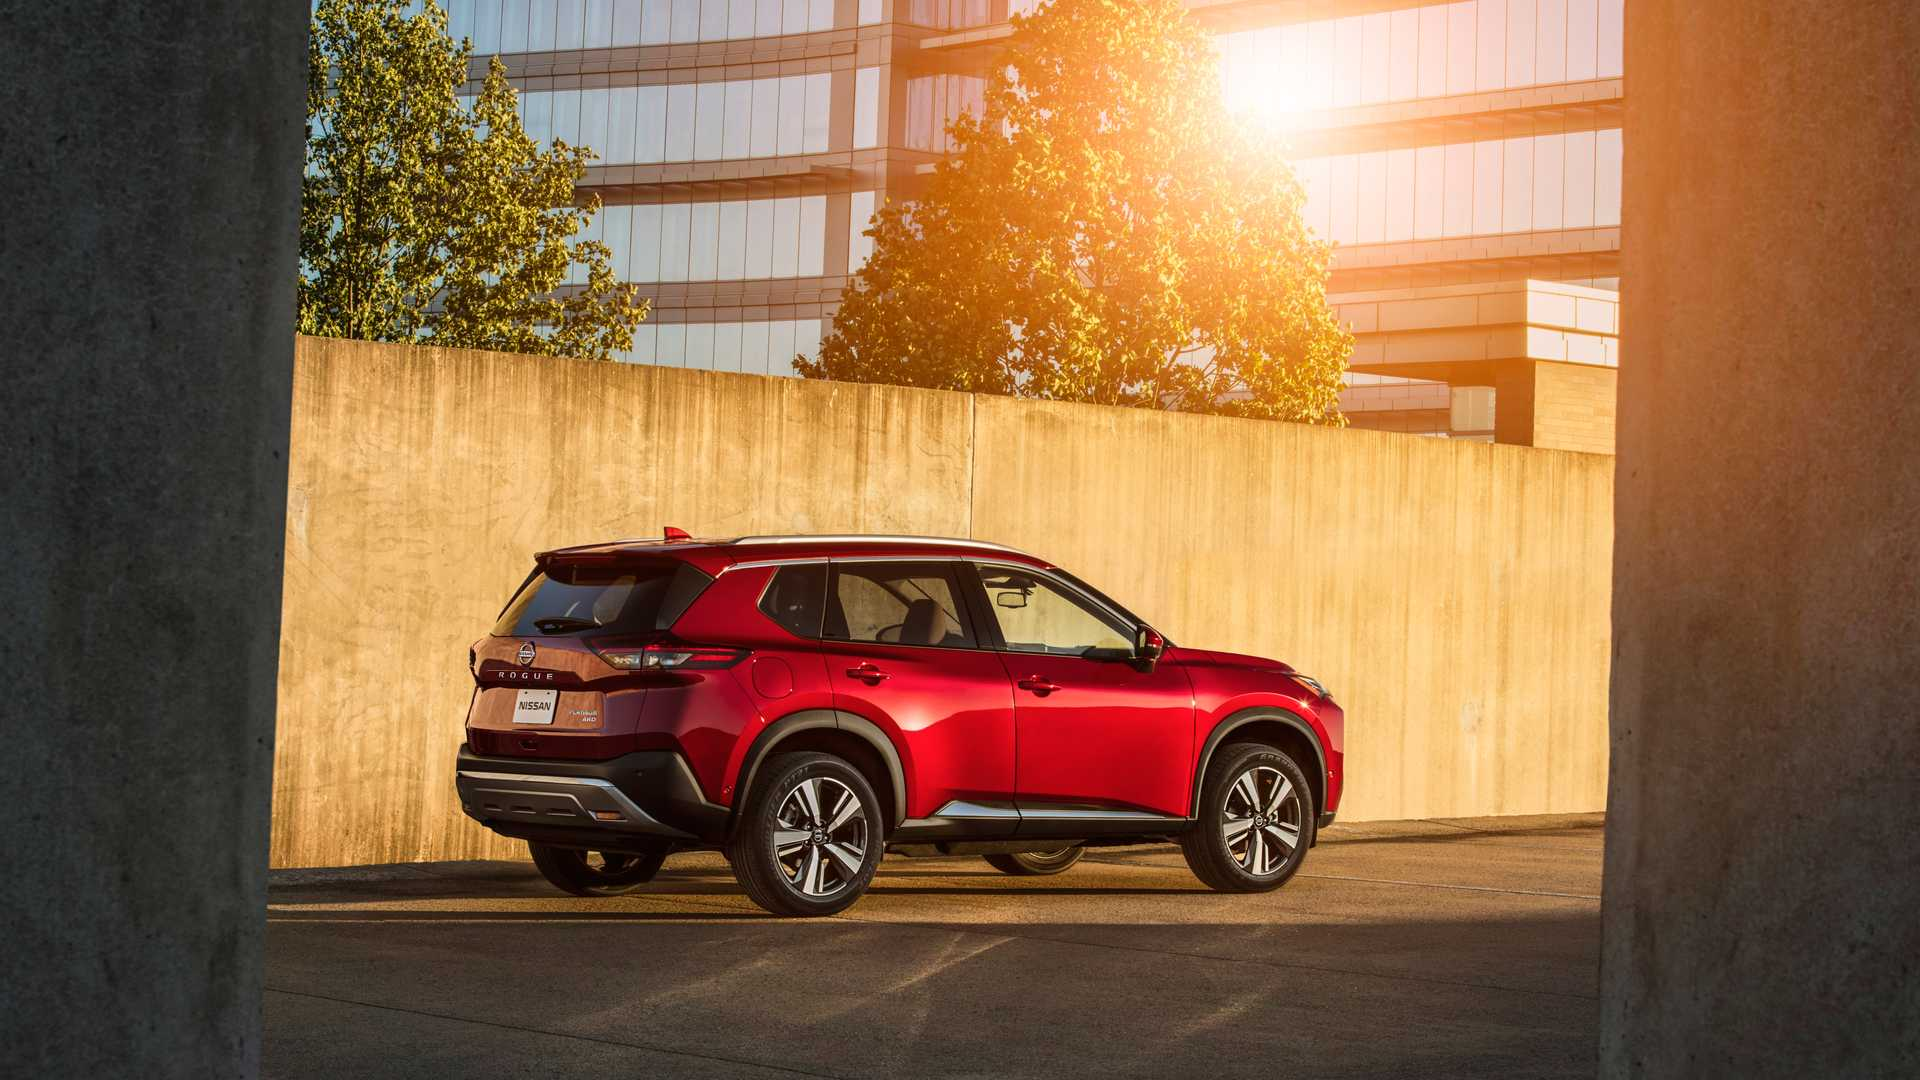 2021 nissan rogue comes with improved everything lacking